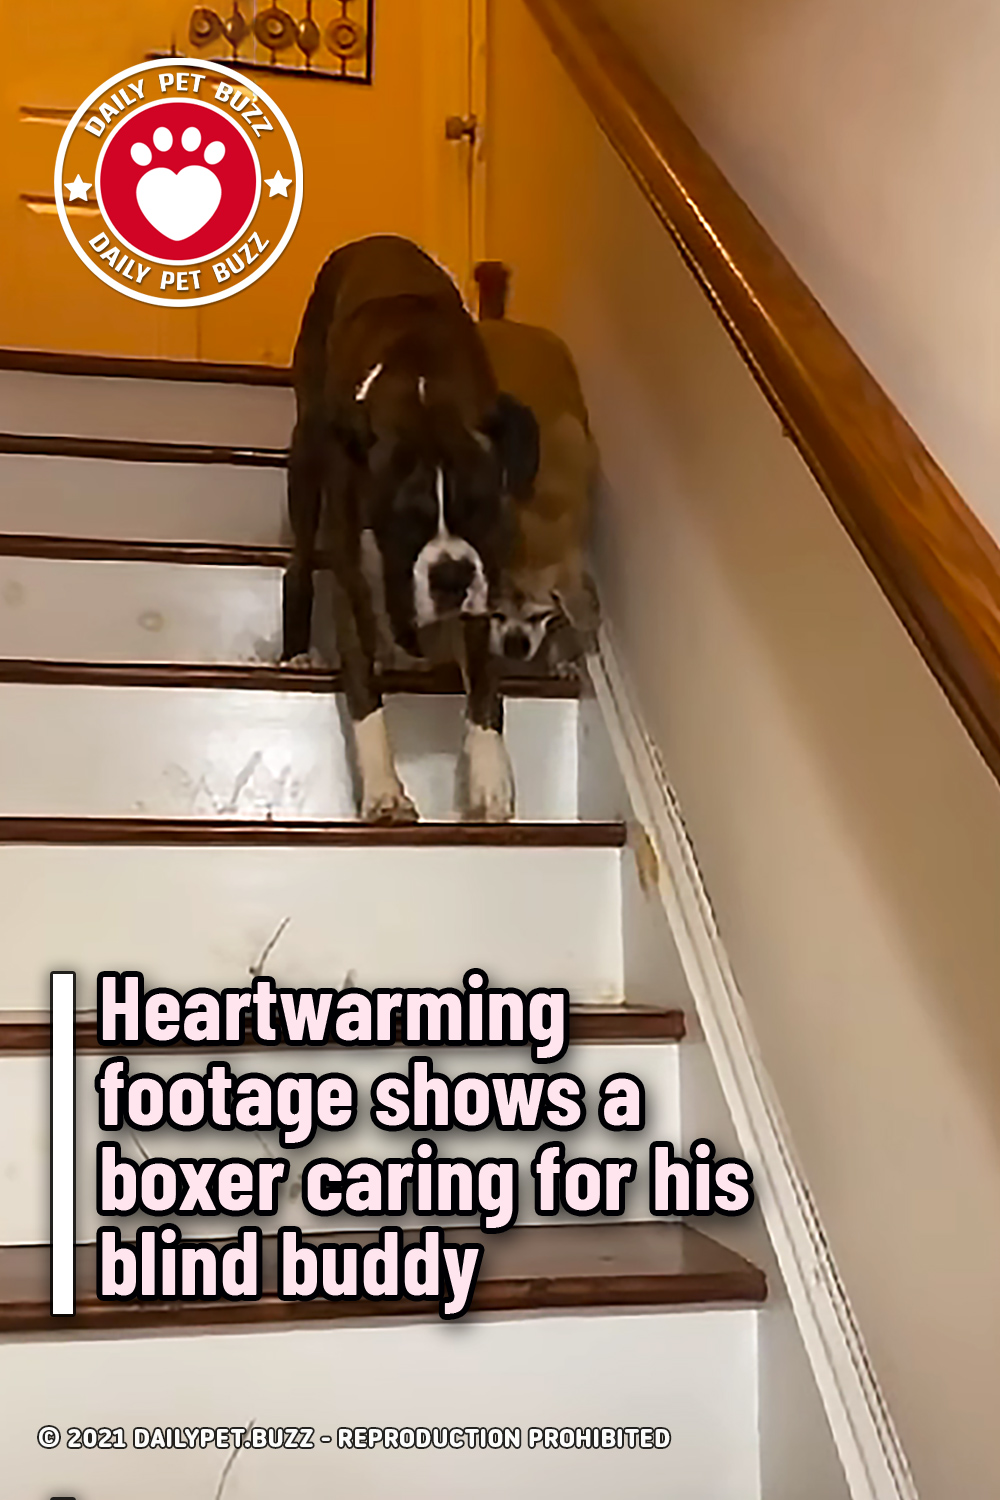 Heartwarming footage shows a boxer caring for his blind buddy